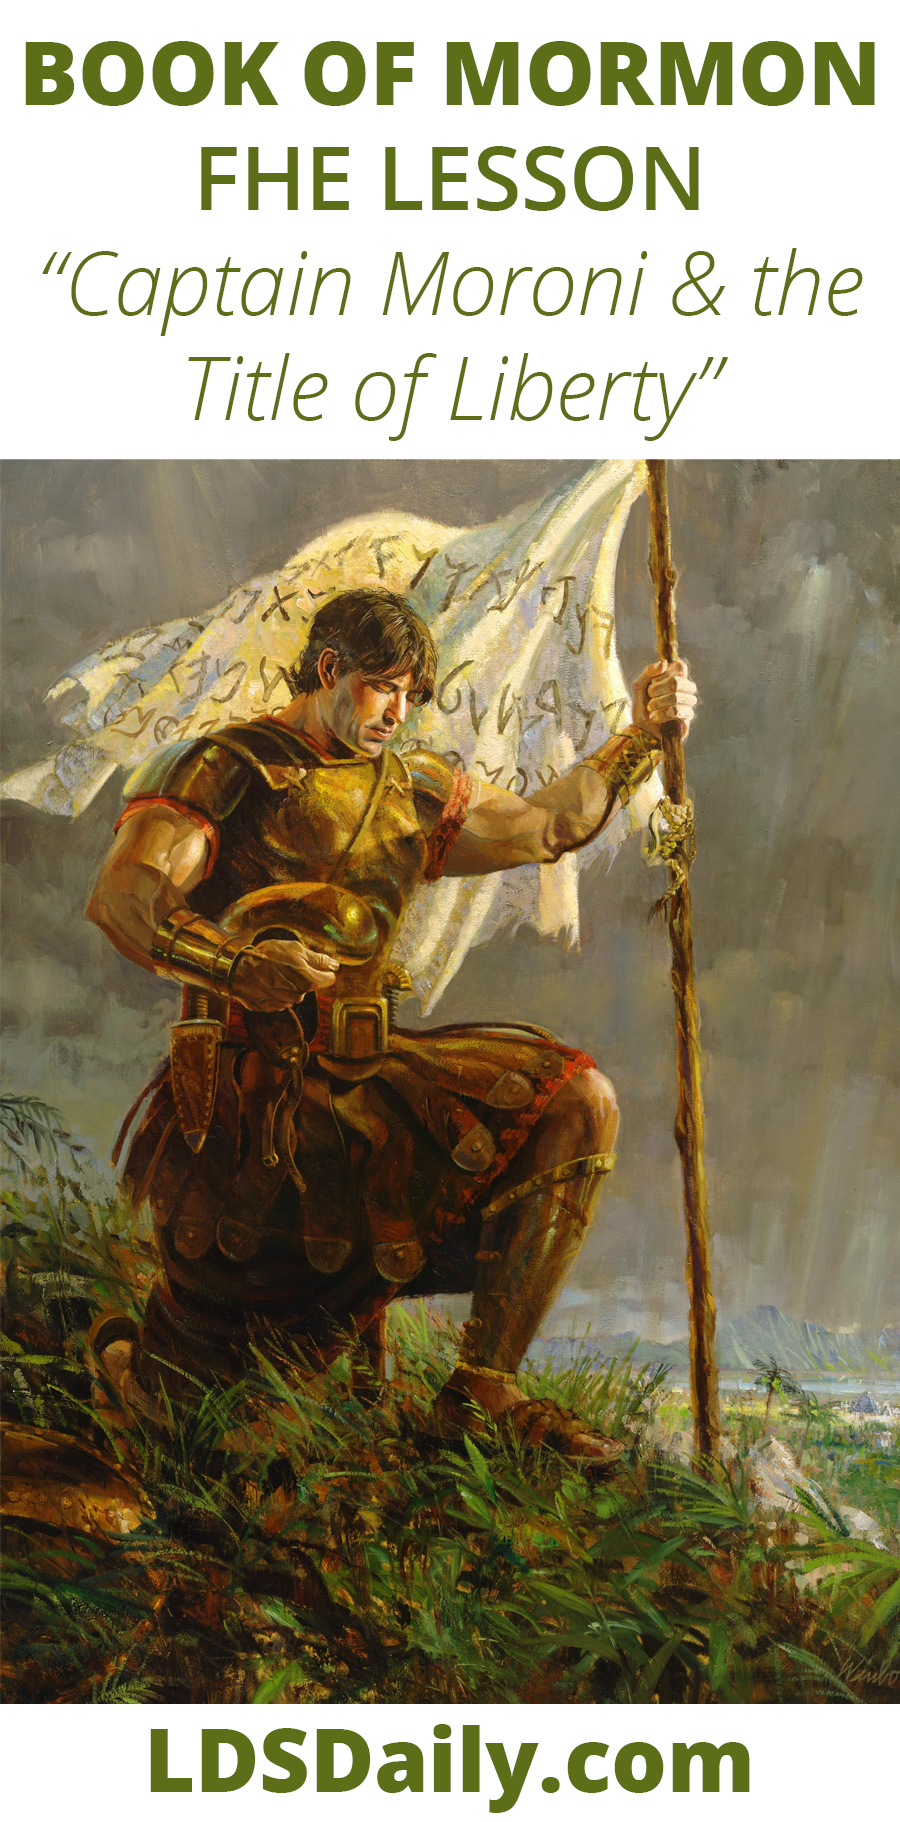 Book of Mormon FHE Lesson - Captain Moroni and the Title of Liberty